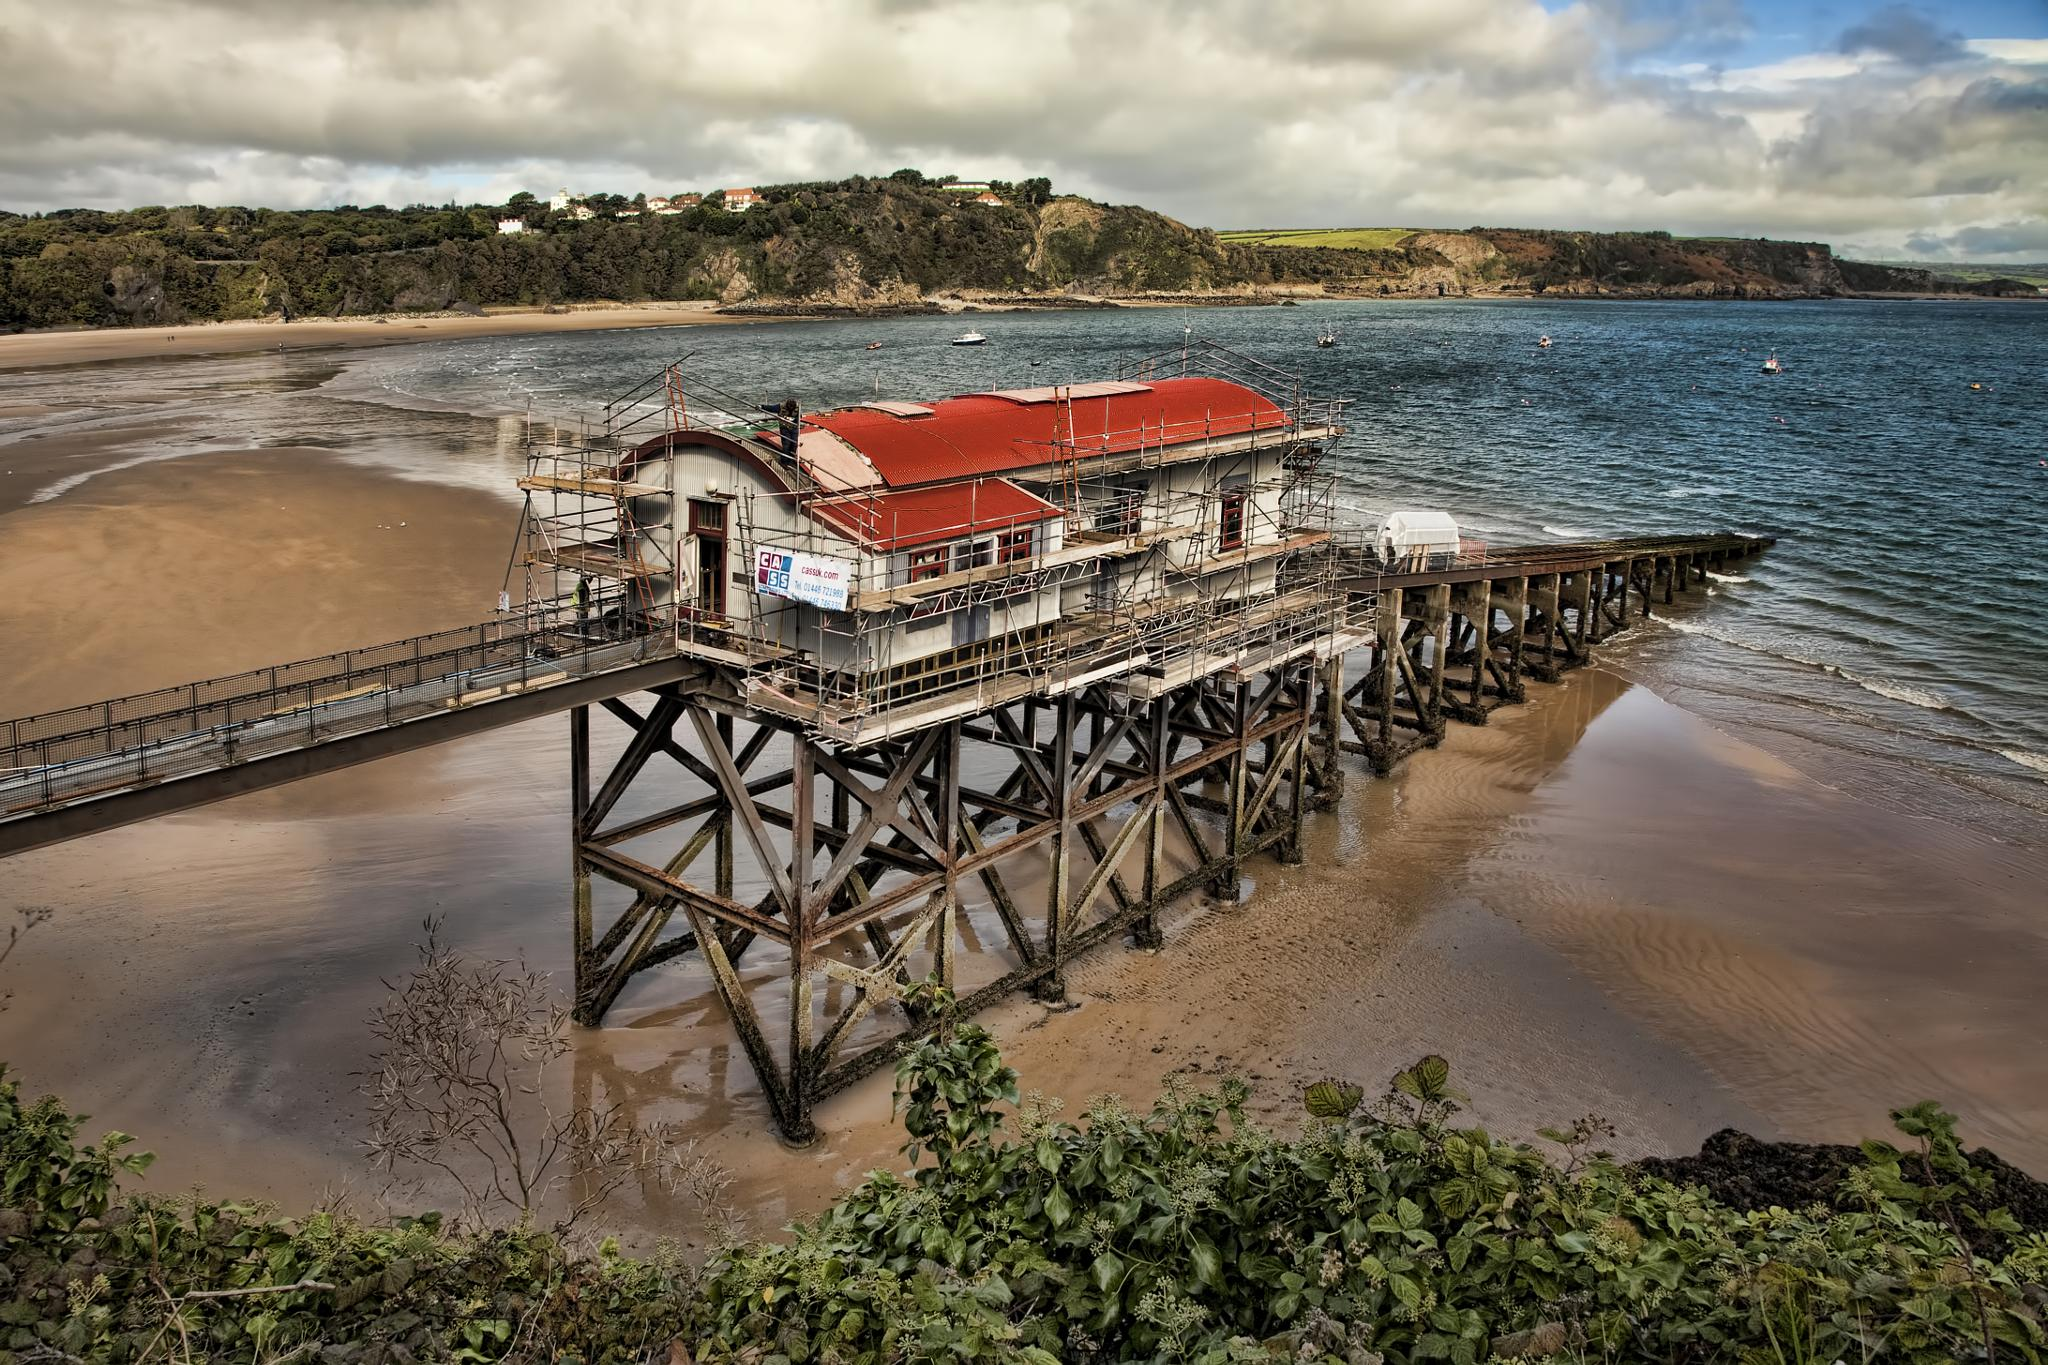 From Lifeboat house to home. by Peter Ellison